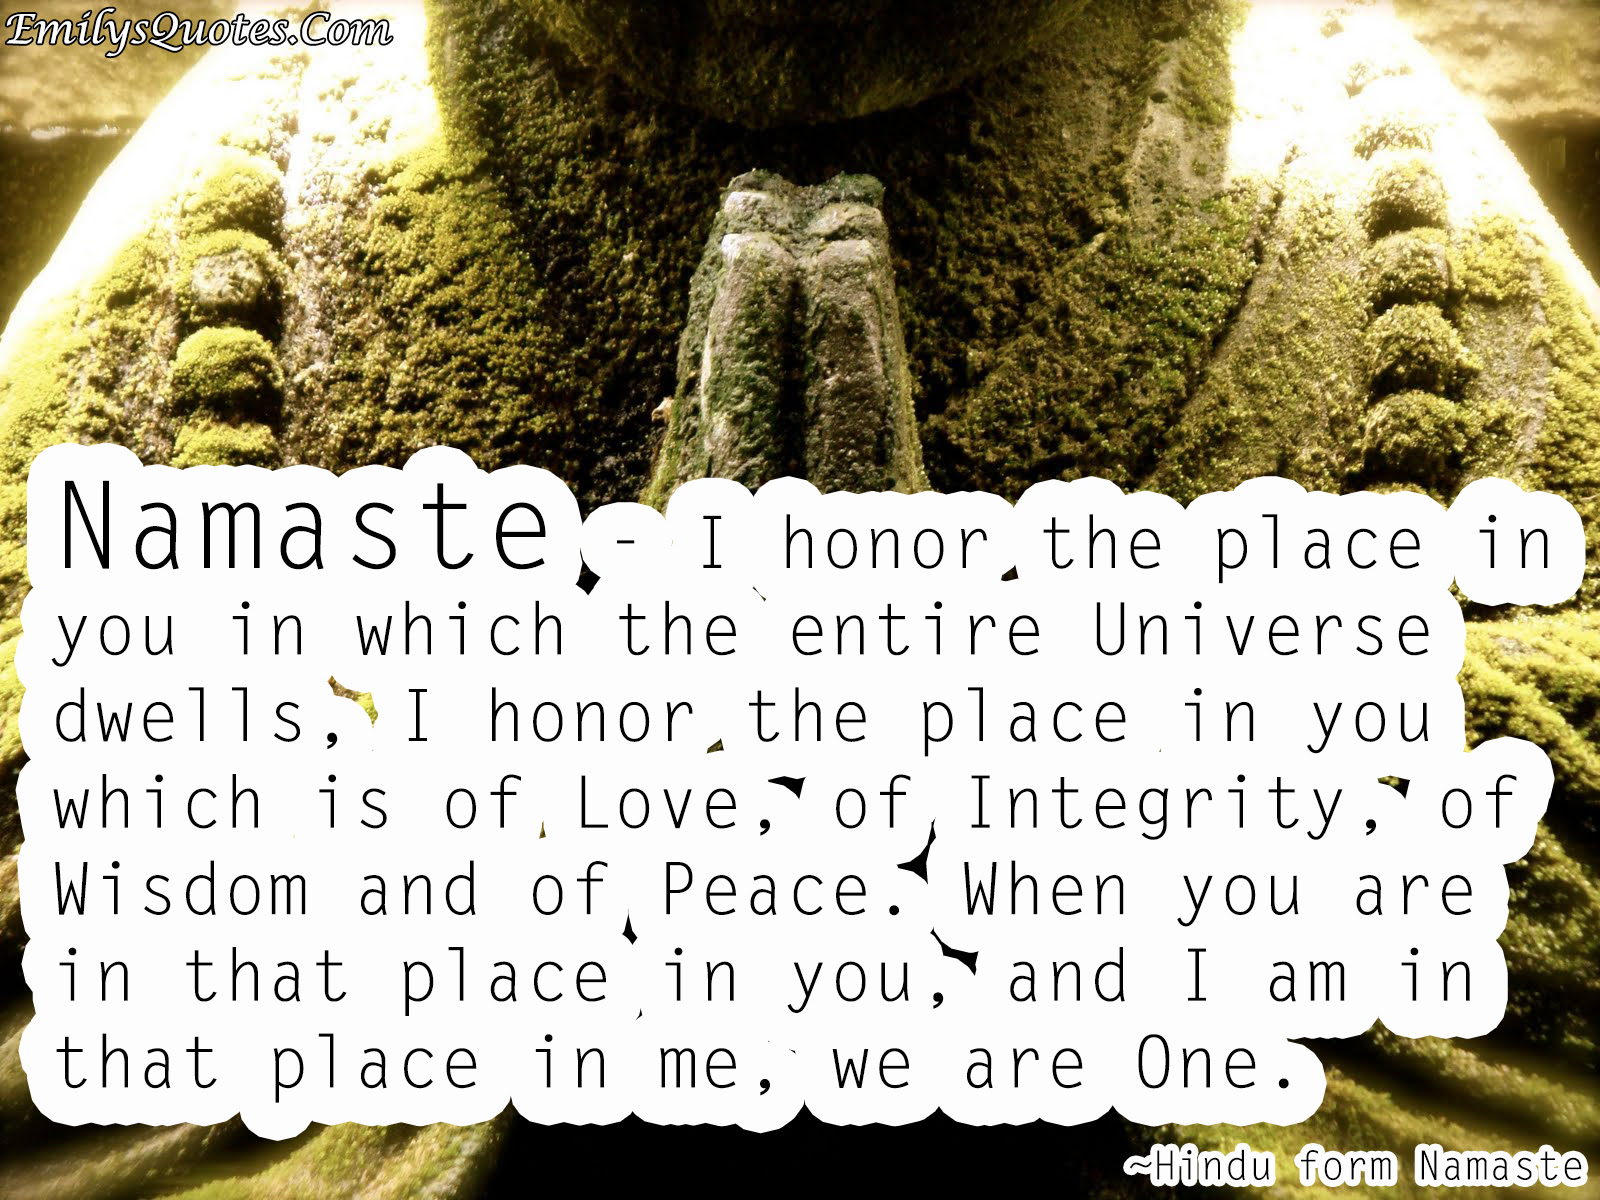 Hindu Form Namaste Popular Inspirational Quotes At Emilysquotes